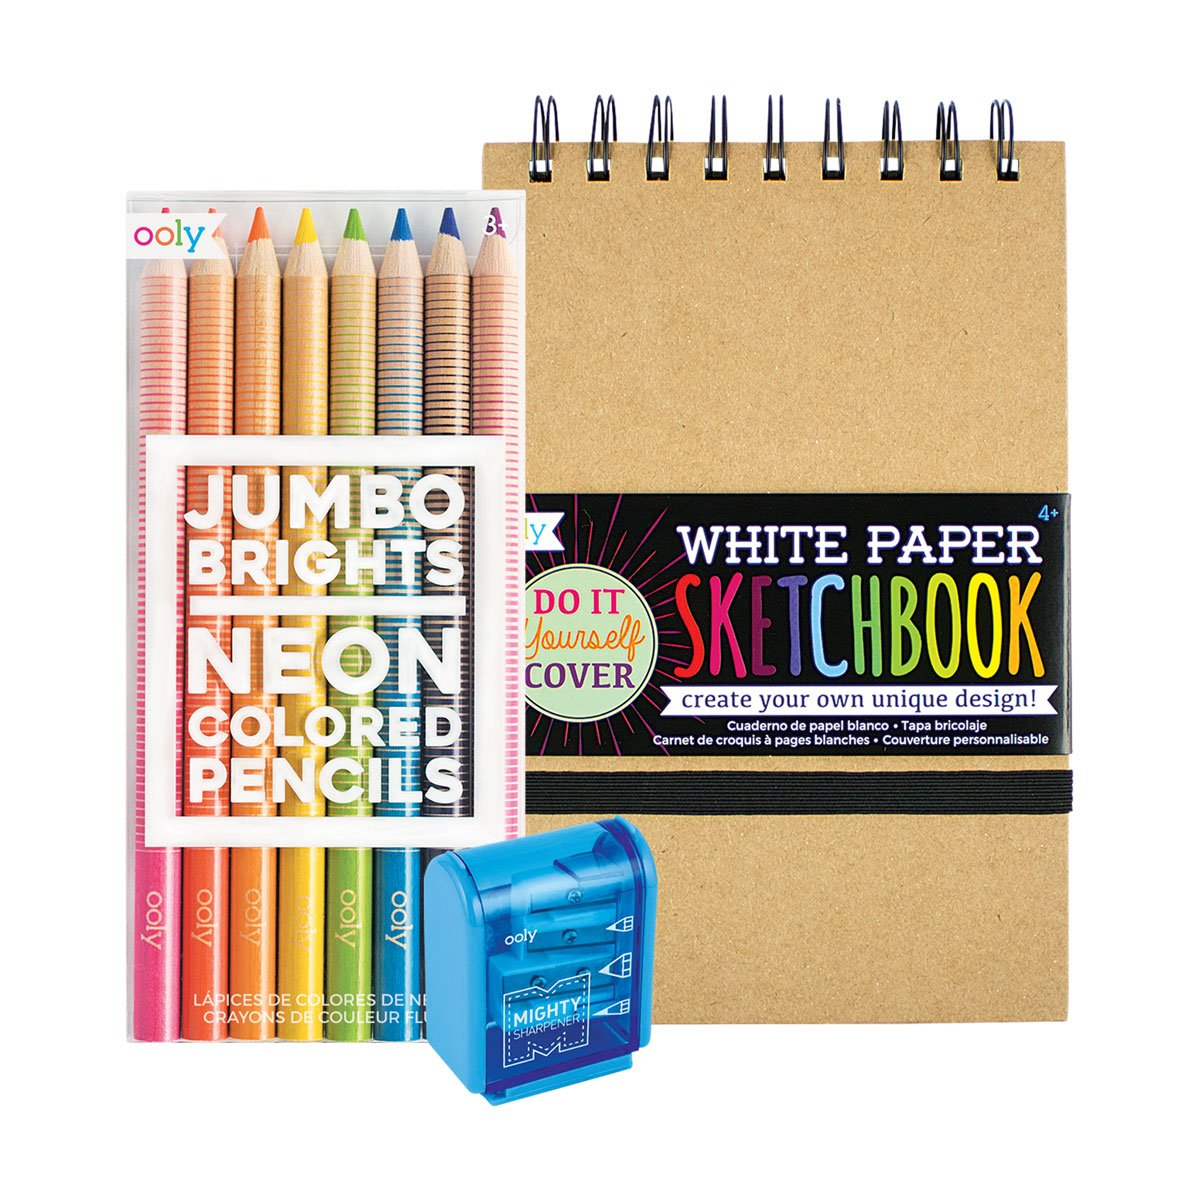 Jumbo Brights Sketch Set